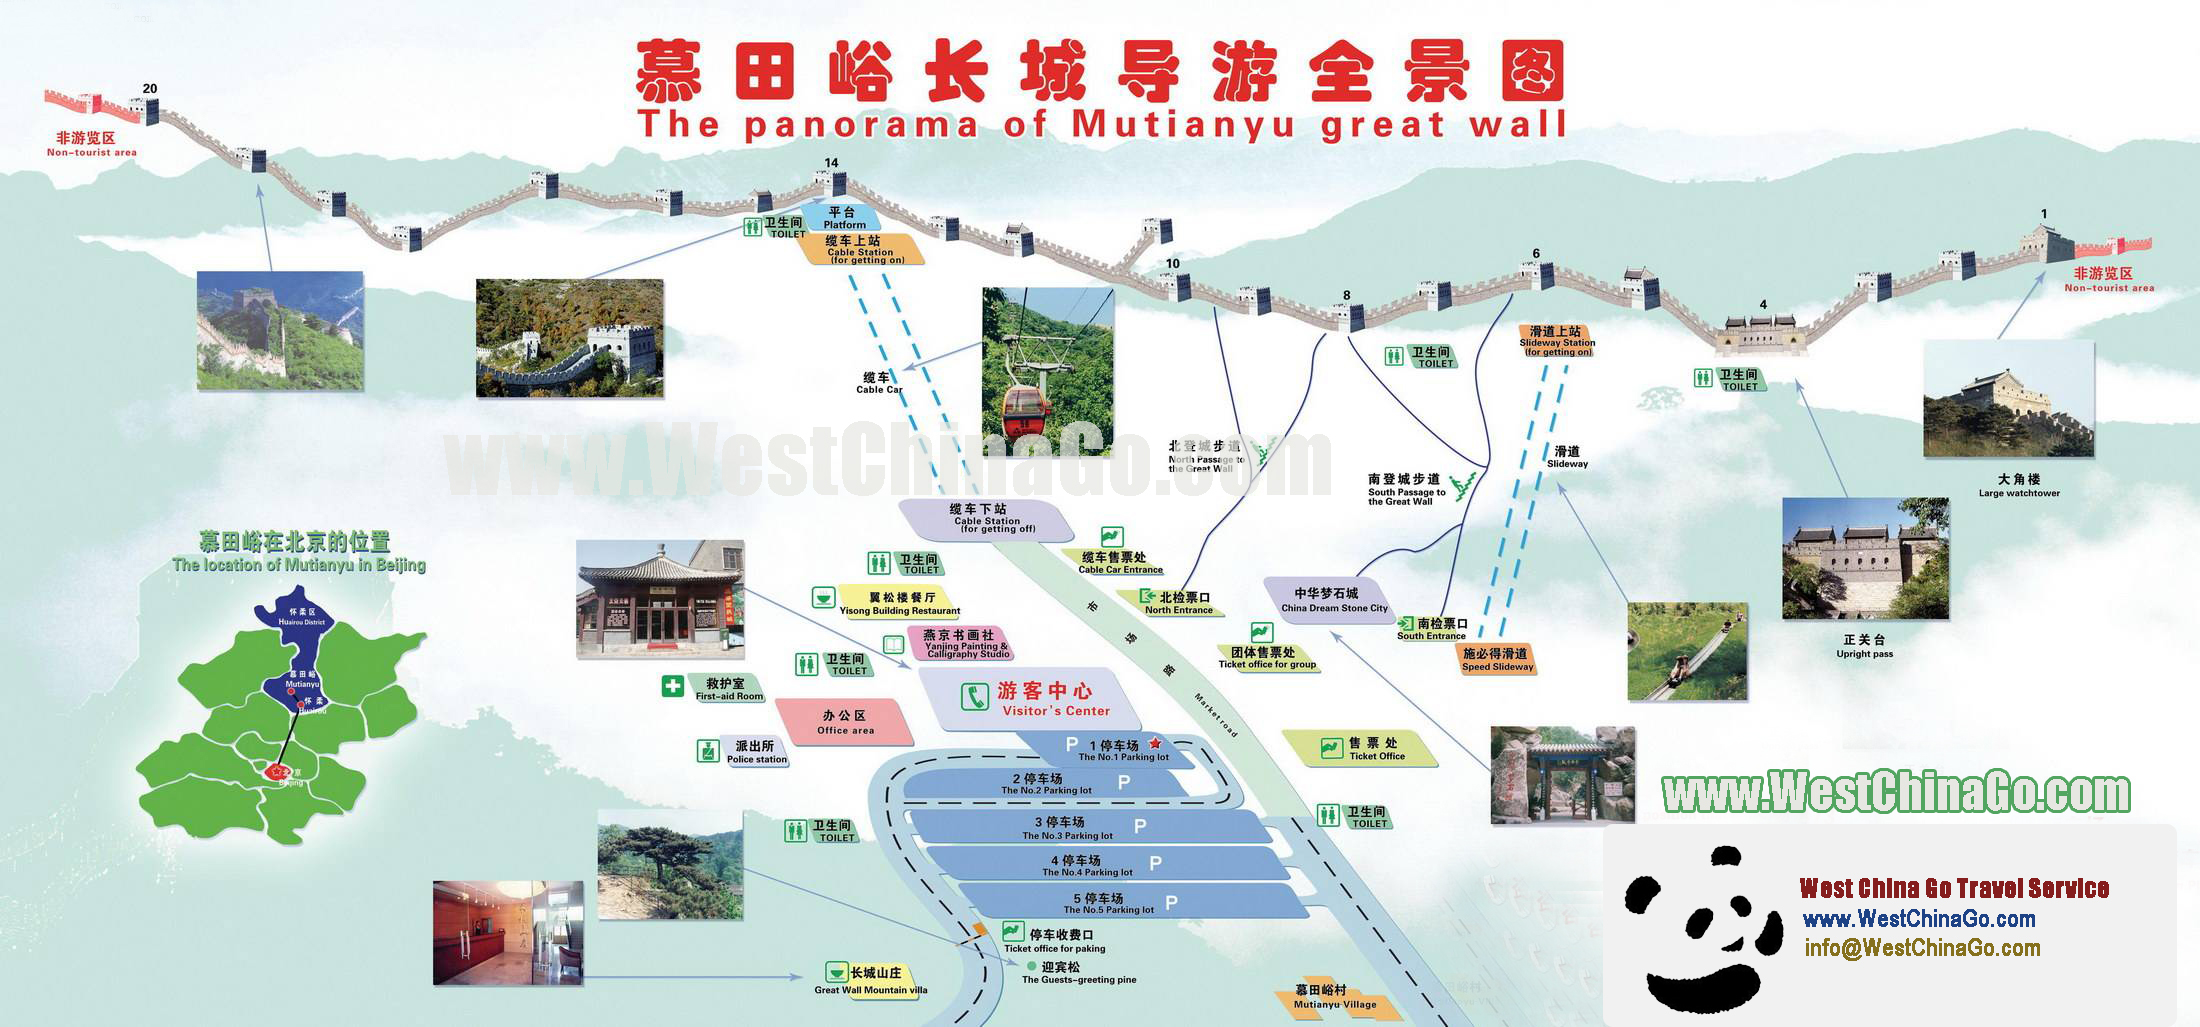 beijing mutianyu great wall Tour Map